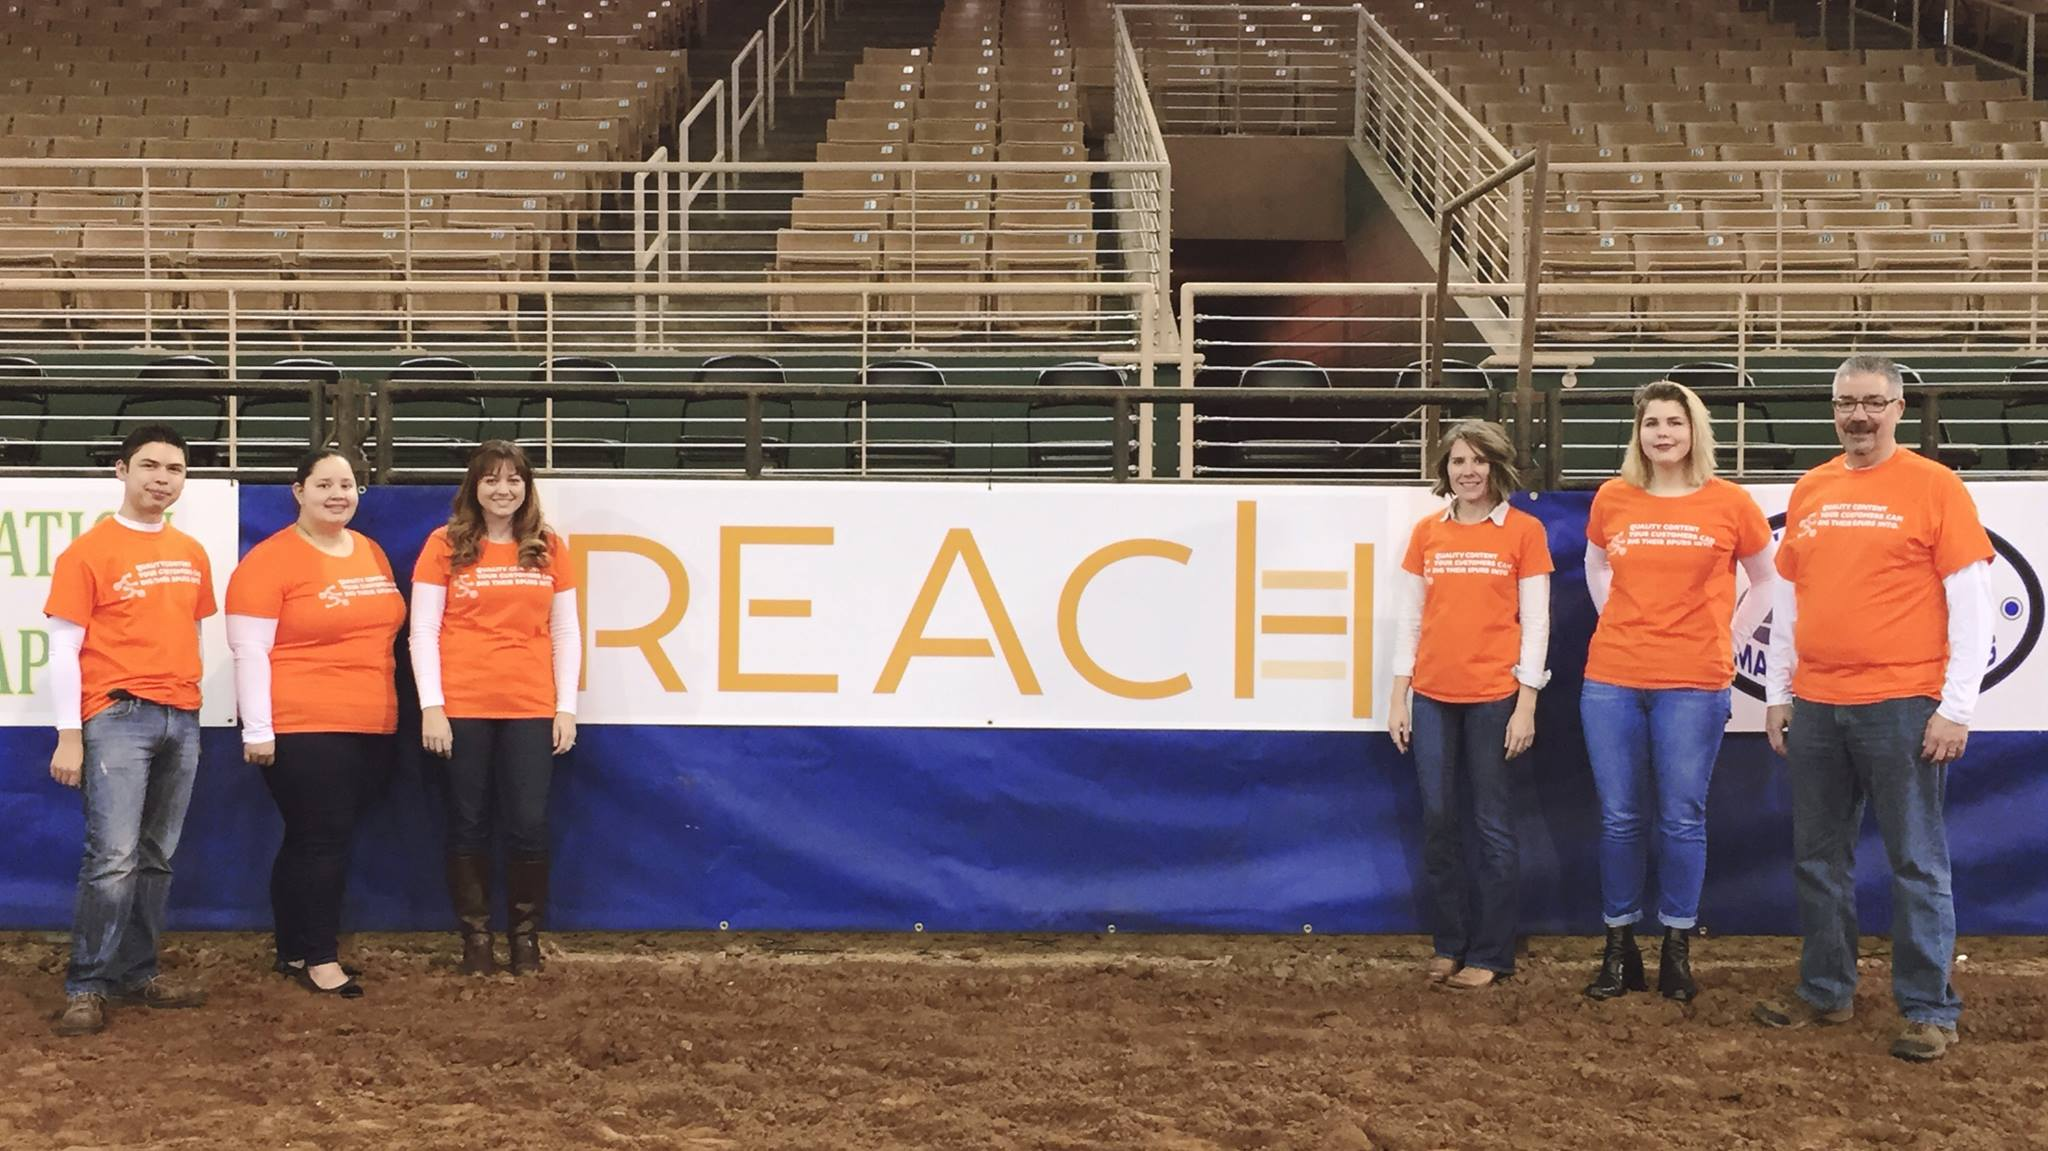 Reach team at Silver Spurs Rodeo